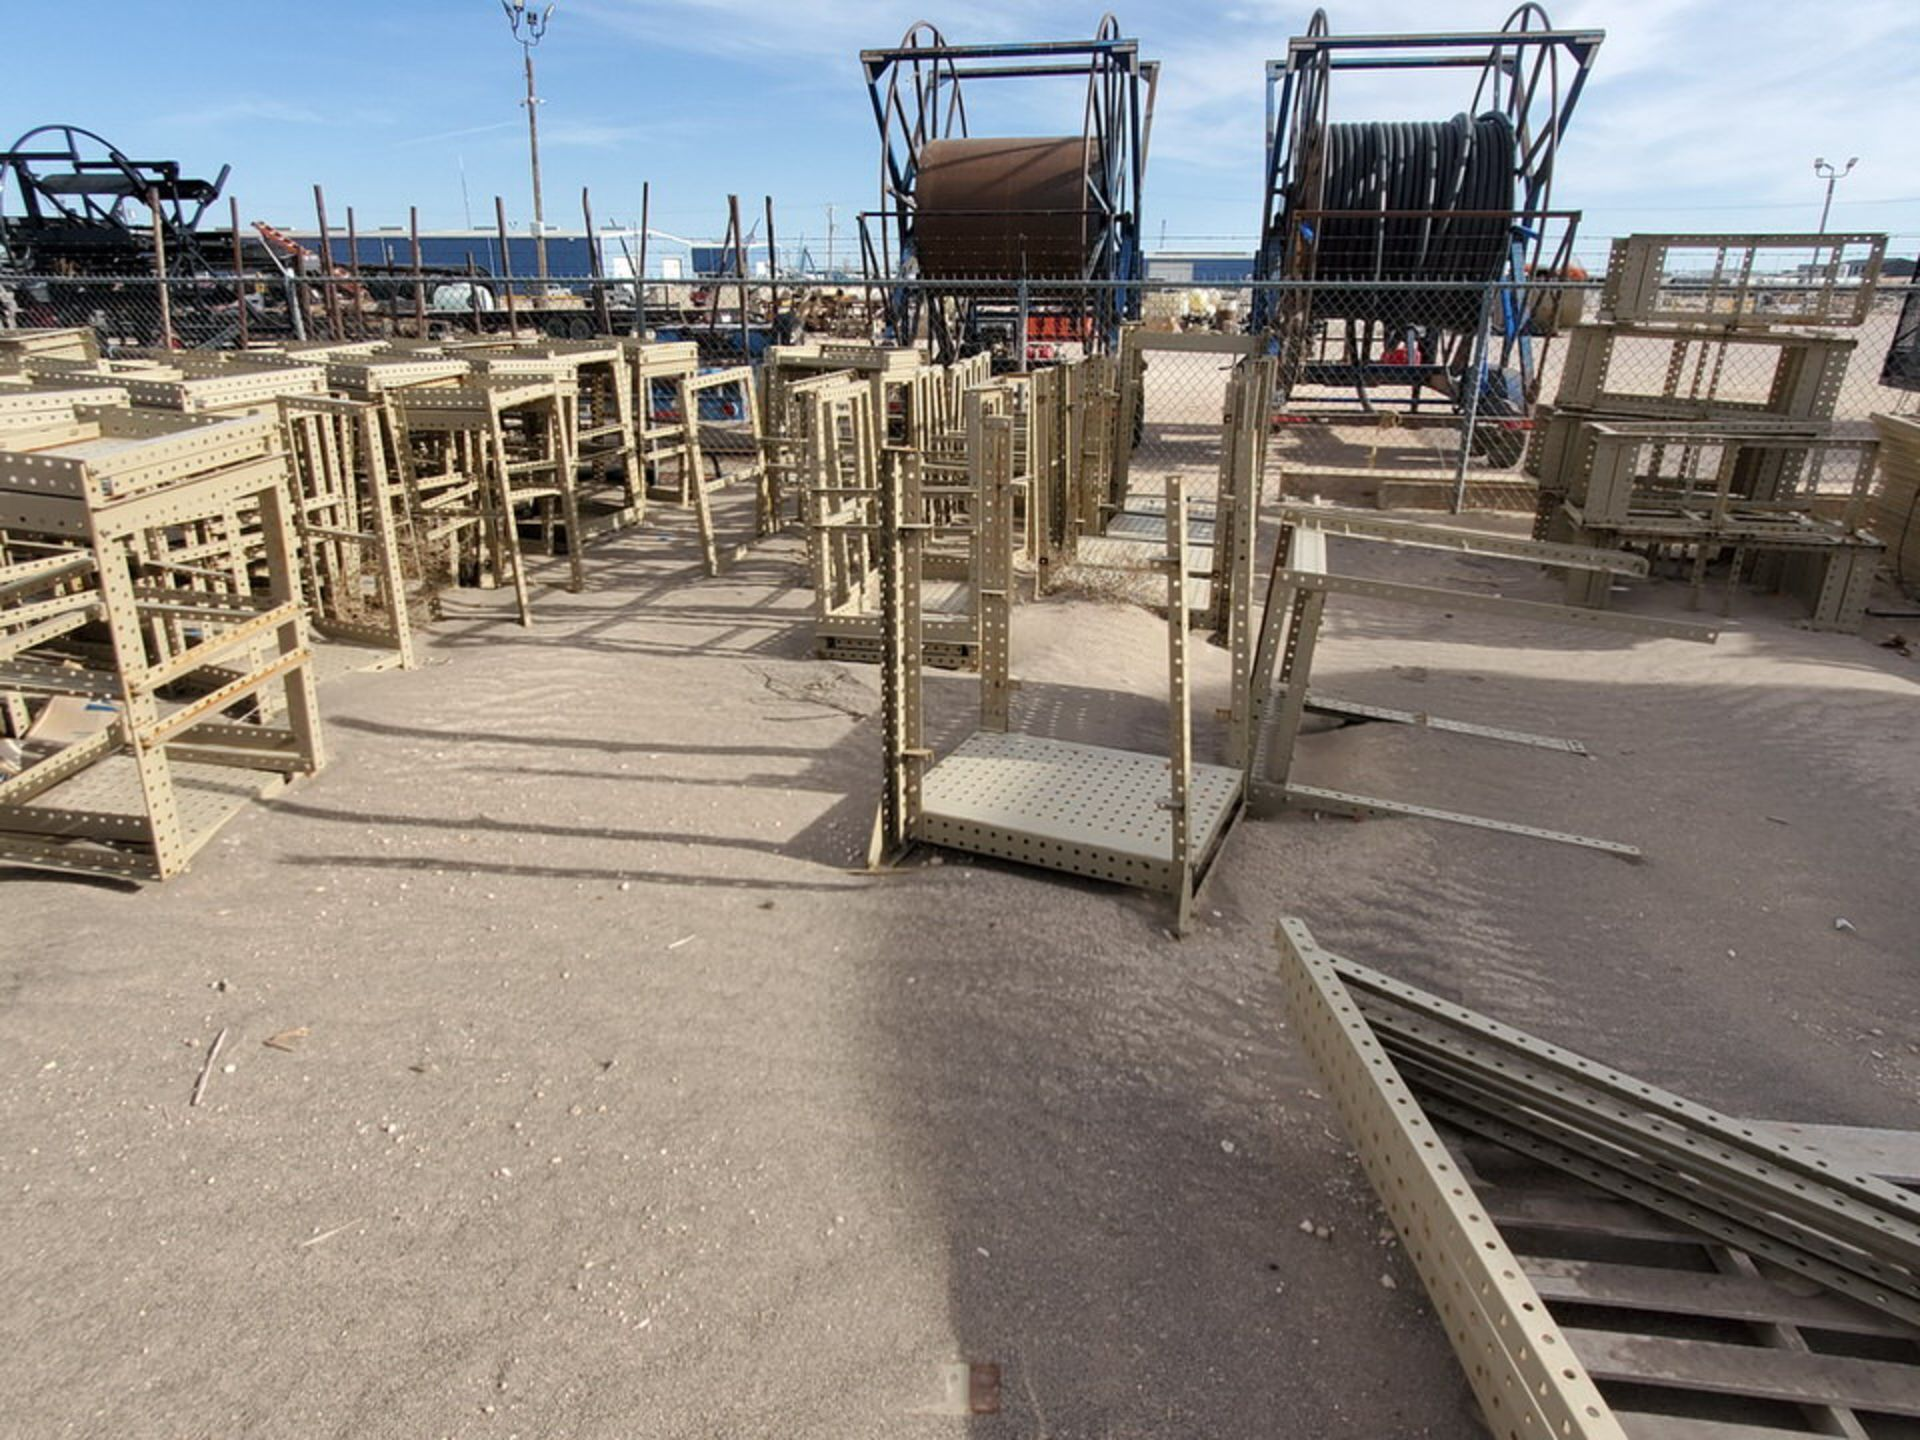 Disassembled Catwalk Sections - Image 7 of 12